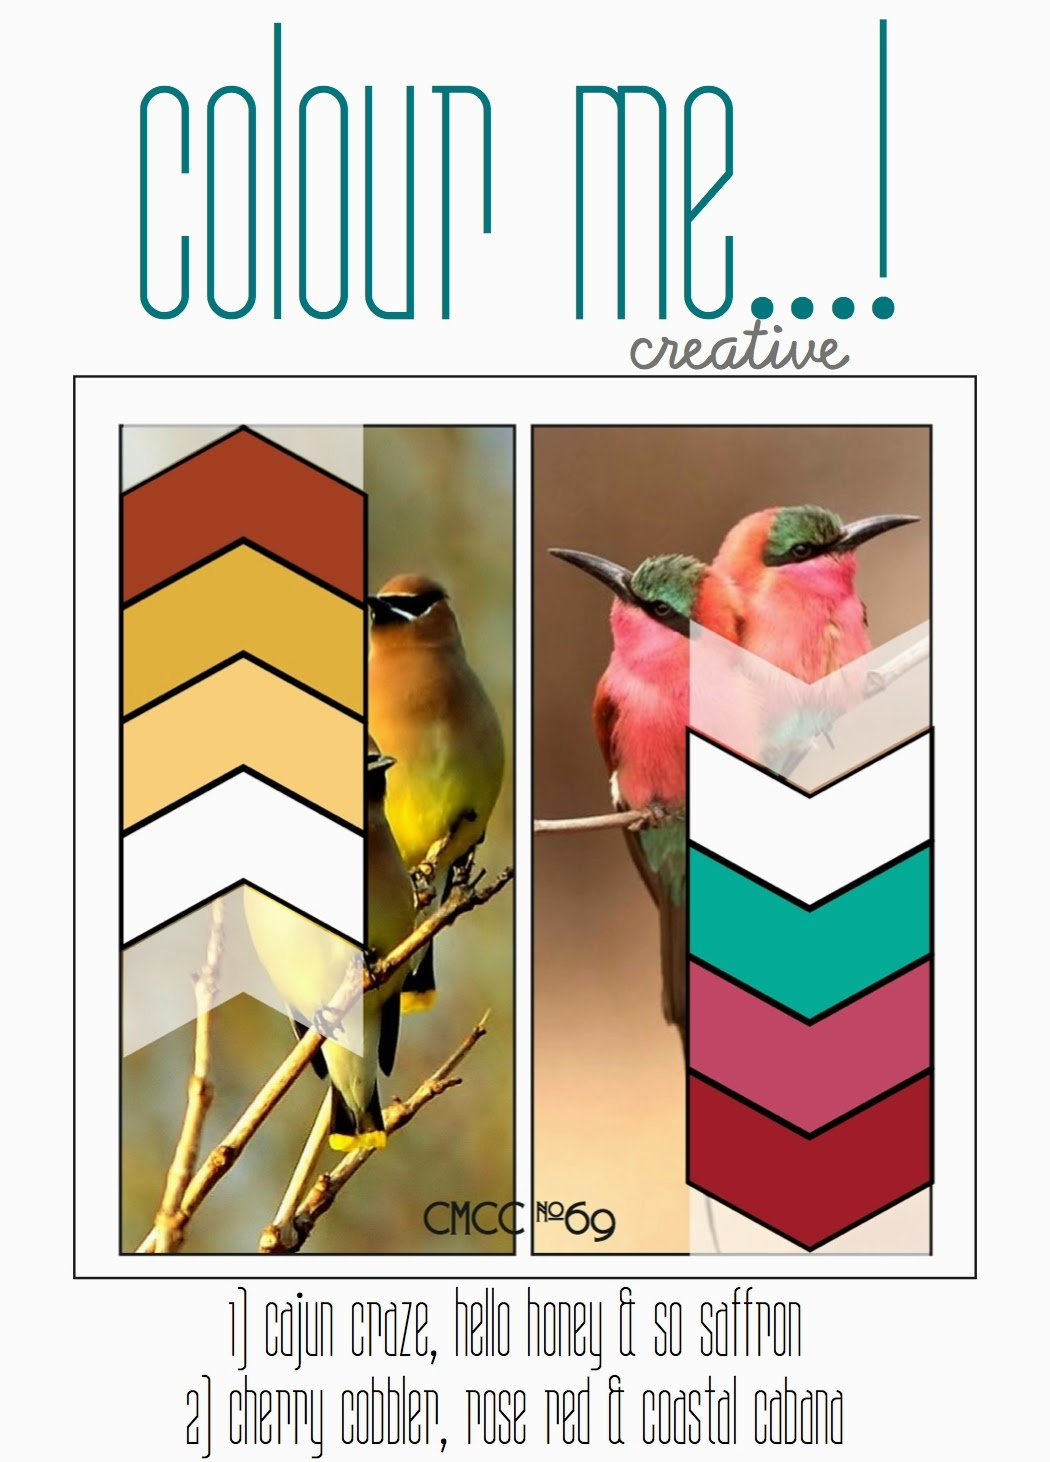 http://colourmecardchallenge.blogspot.com/2015/04/cmcc69-colour-me-creative.html